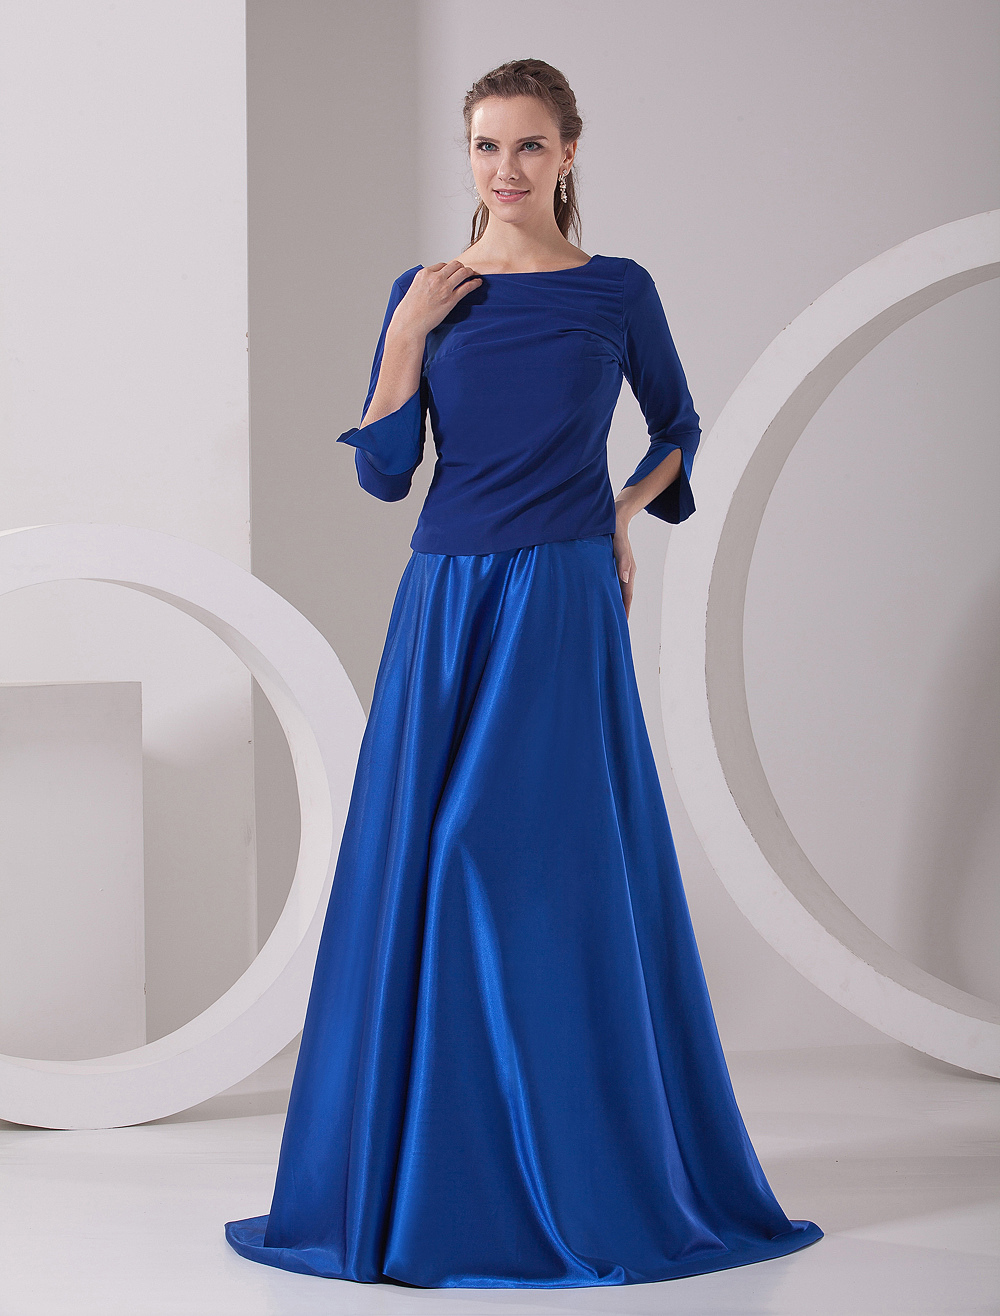 Charming Royal Blue A-line Bateau Neck Half Sleeves Zipper Elastic Woven Satin Fashion Dress For Mother of the Bride